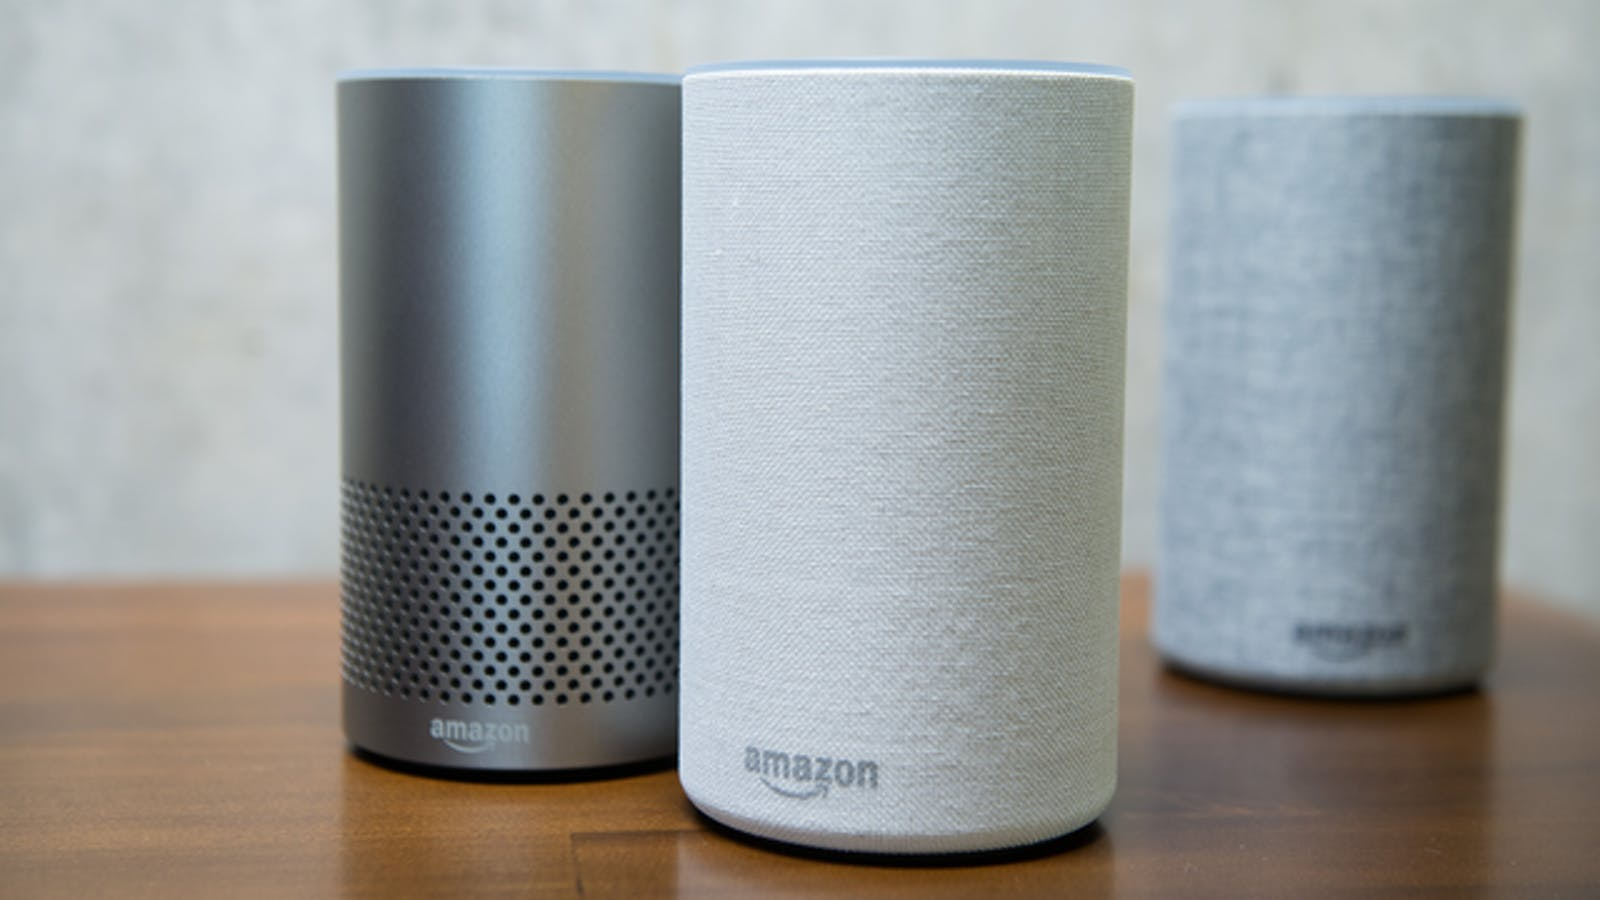 Amazon's Echo devices, powered by Alexa. Photo by Bloomberg.